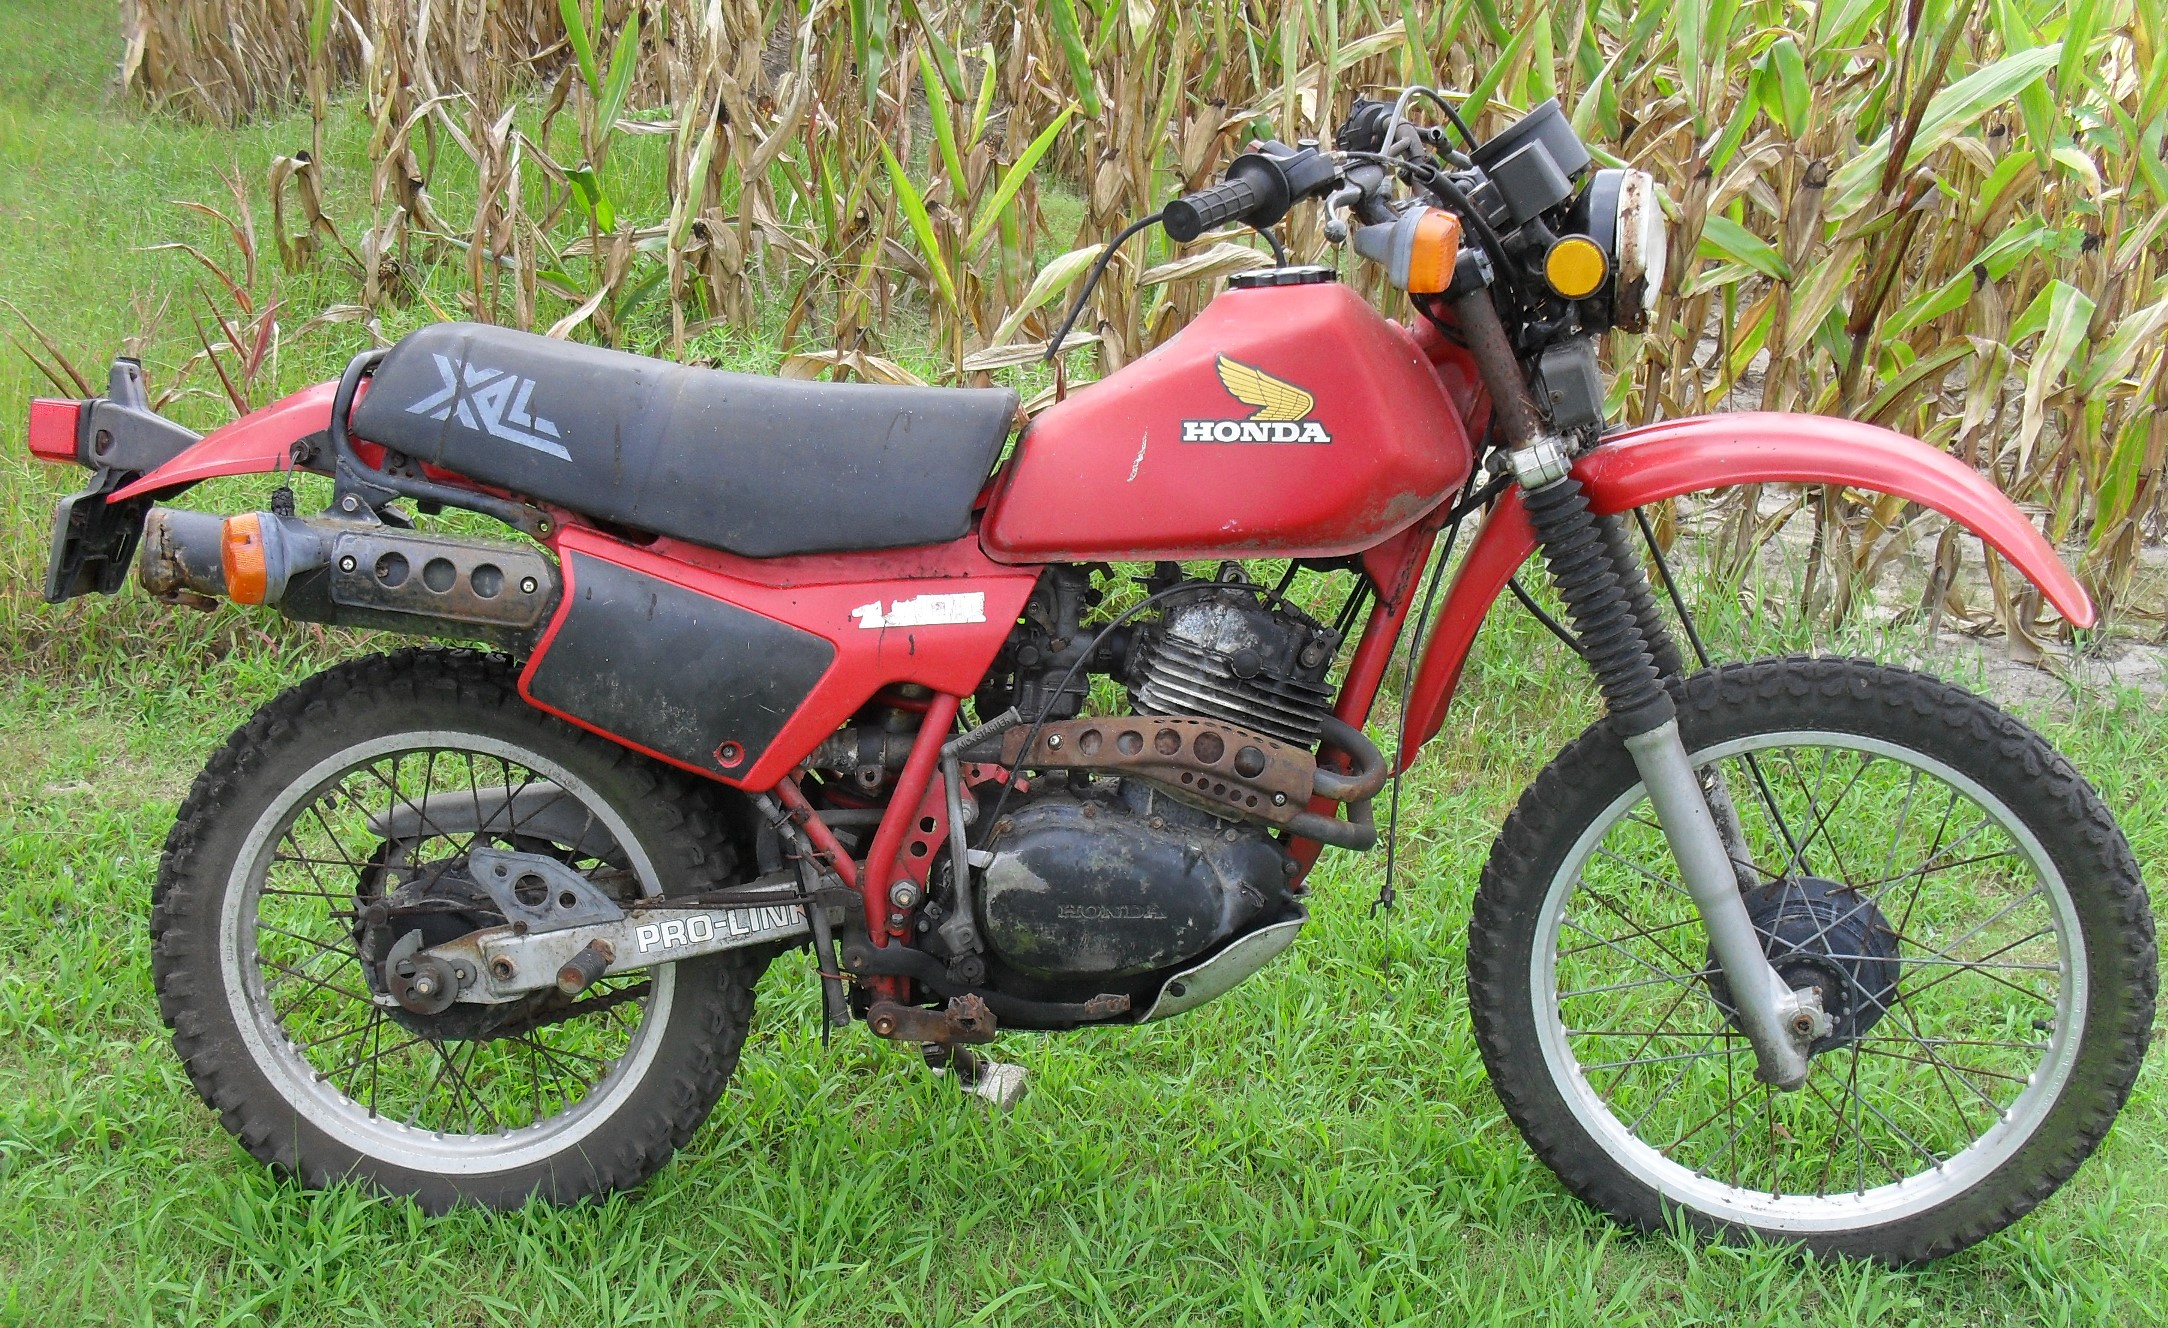 Img in addition Cbr R Helmetlock moreover B D Ce Ae B E Aaec X X moreover D My Ruby Rubicon additionally F. on honda atv parts